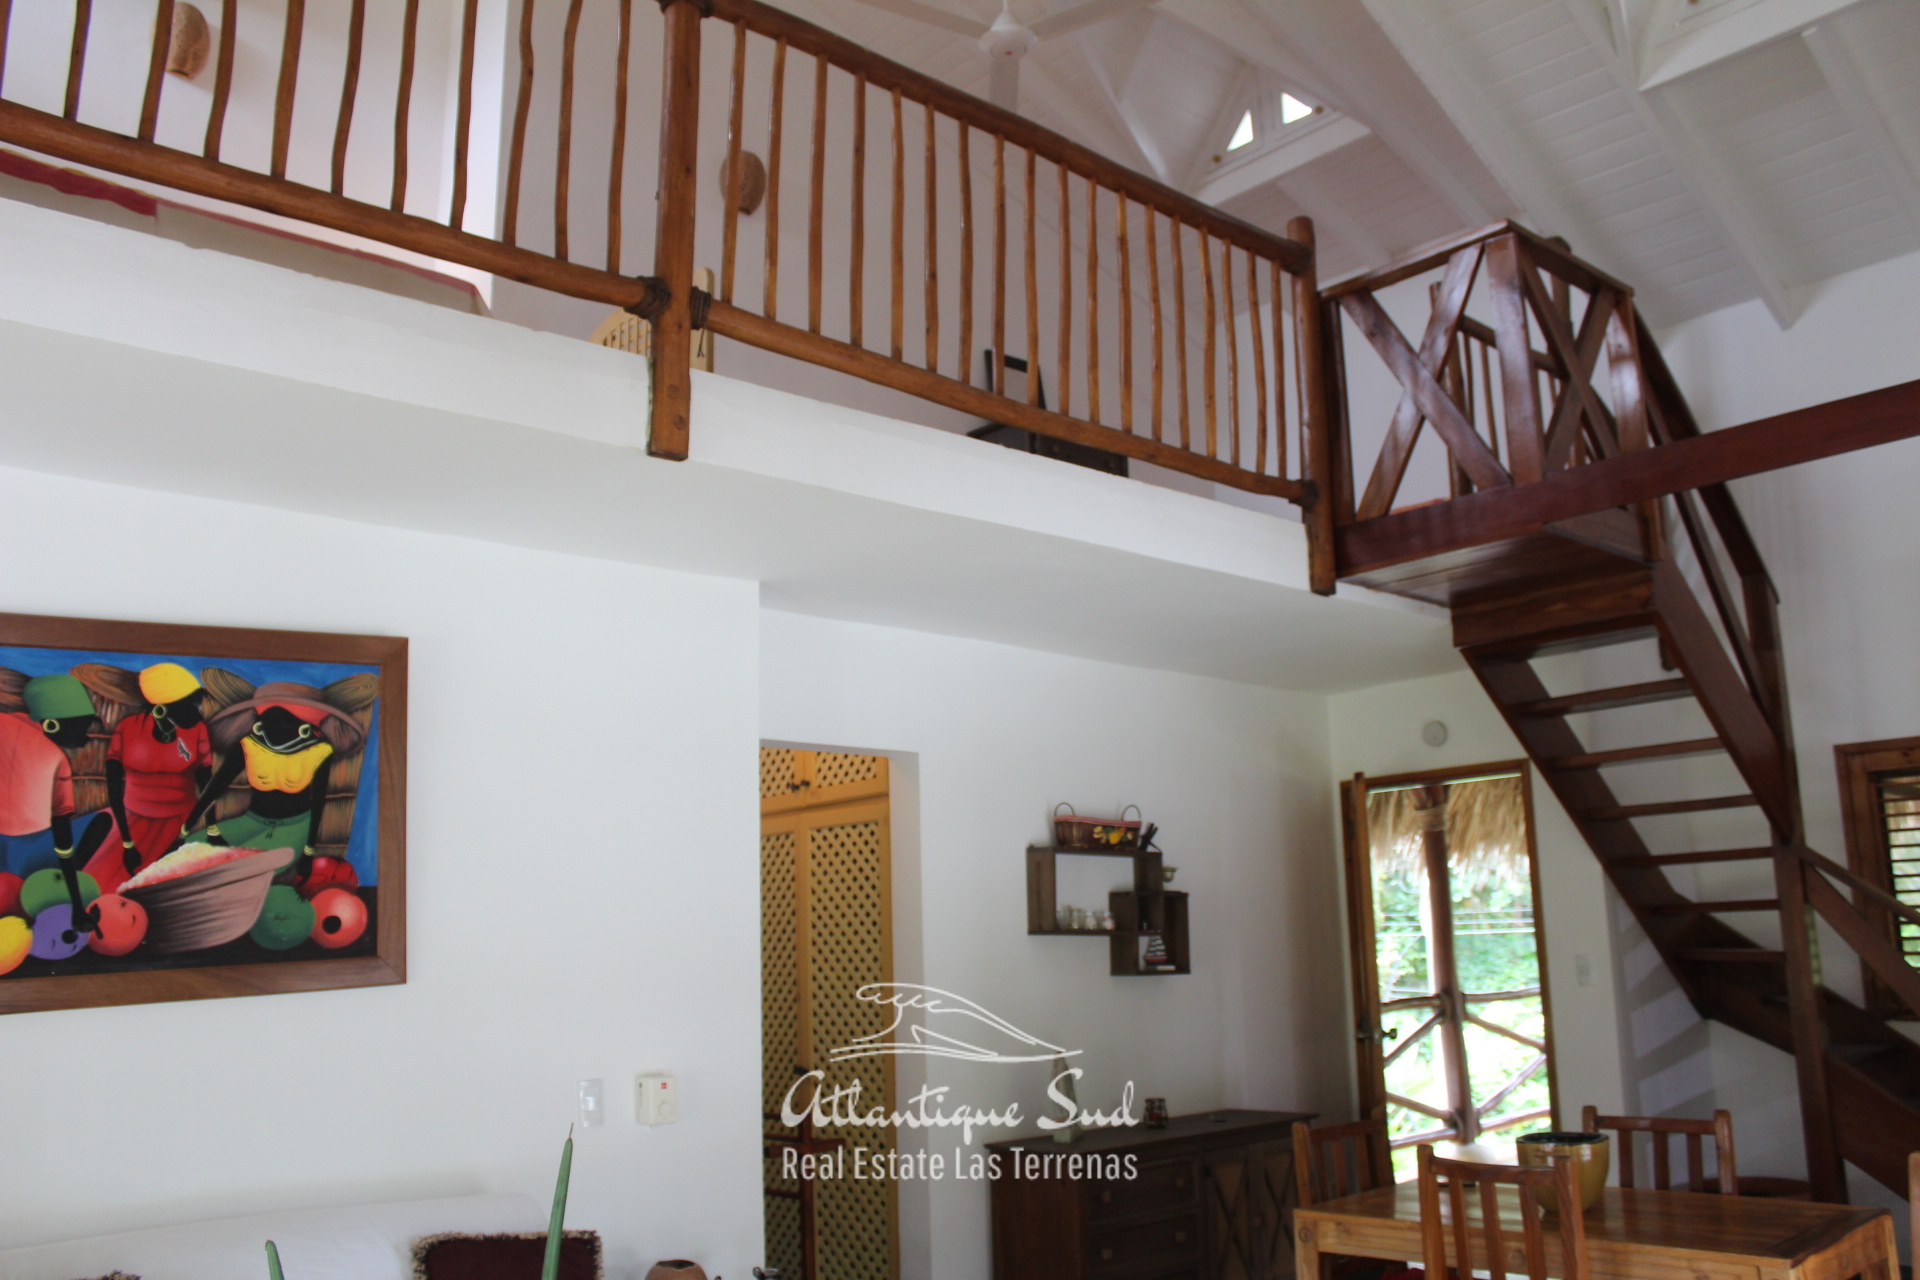 For-sale-Apartment-in-beachfront-community-with-mezzanine-Las-Terrenas_4823 (1).JPG